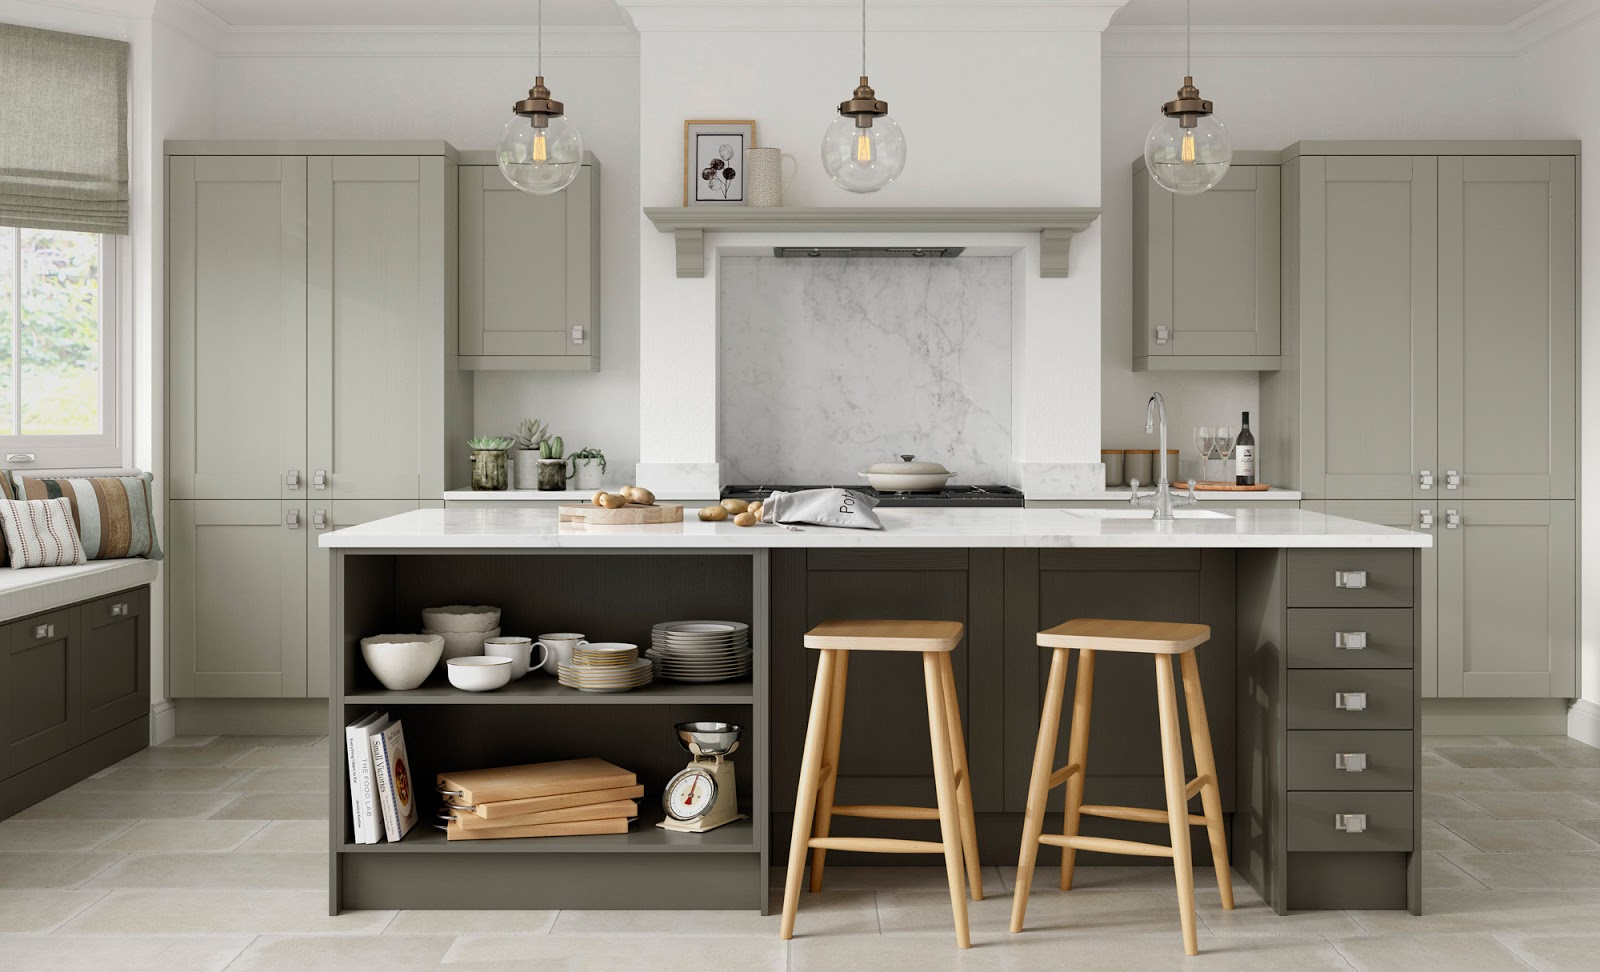 A brand new kitchen style the kensington will be available from 24th july from our uform kitchen stori range at the kitchen yard